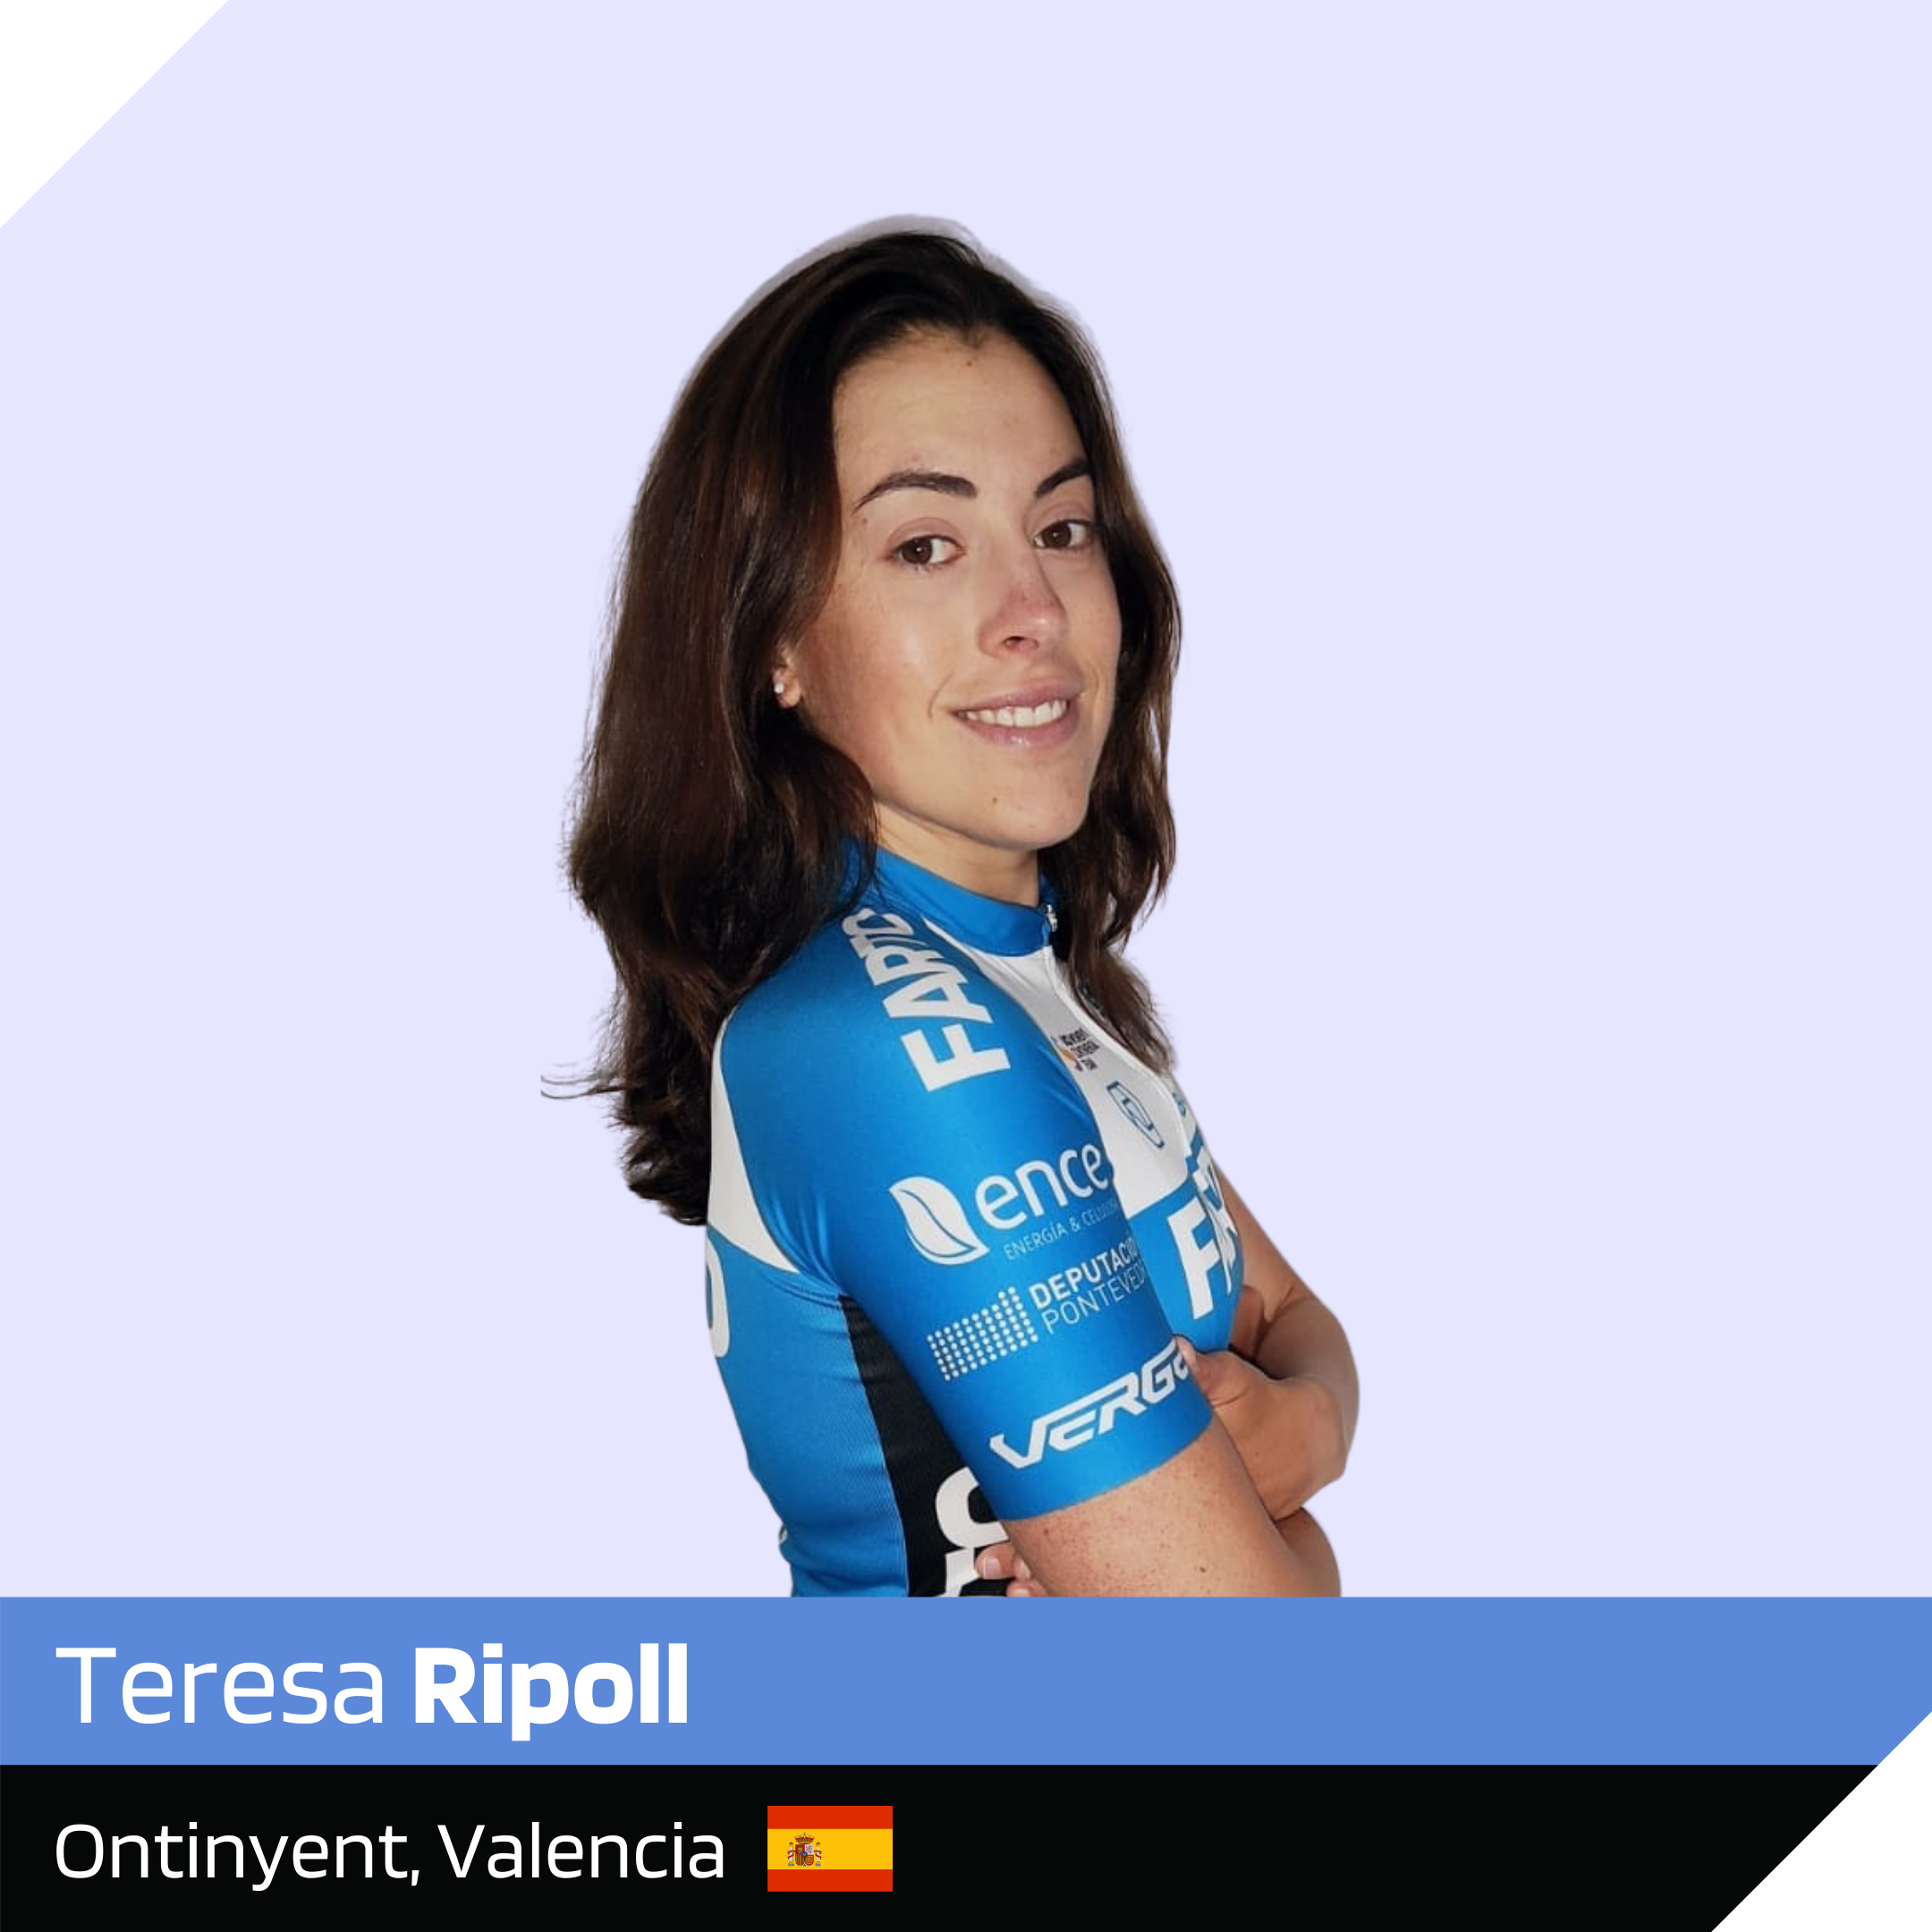 Tere Ripoll